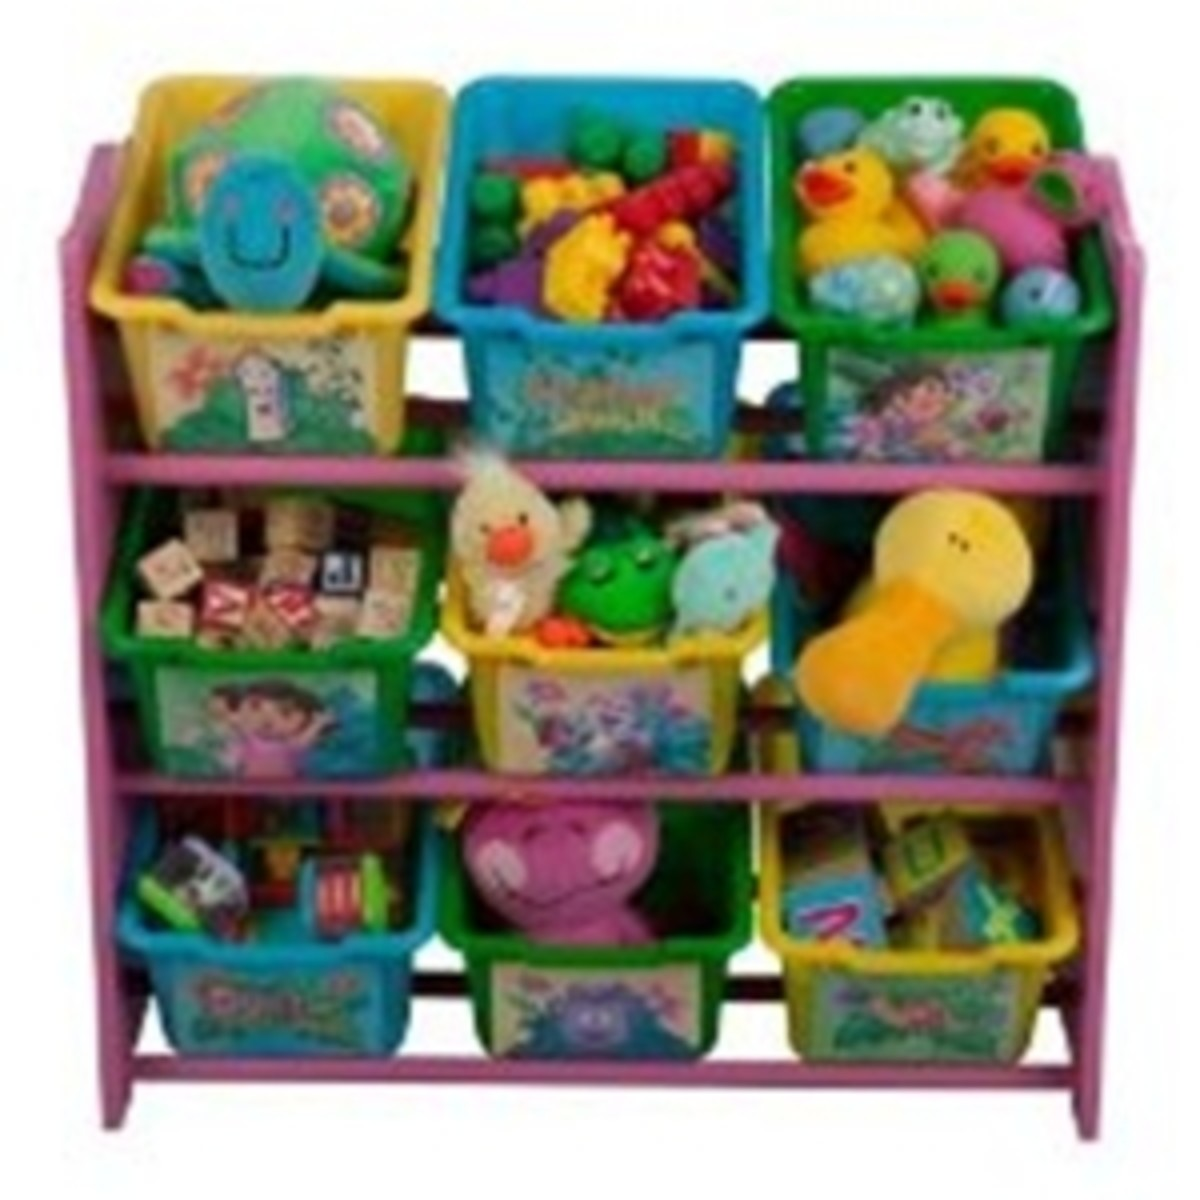 Dora The Explorer nine bin toy storage stacker to keep a little explorer's room neat and tidy!